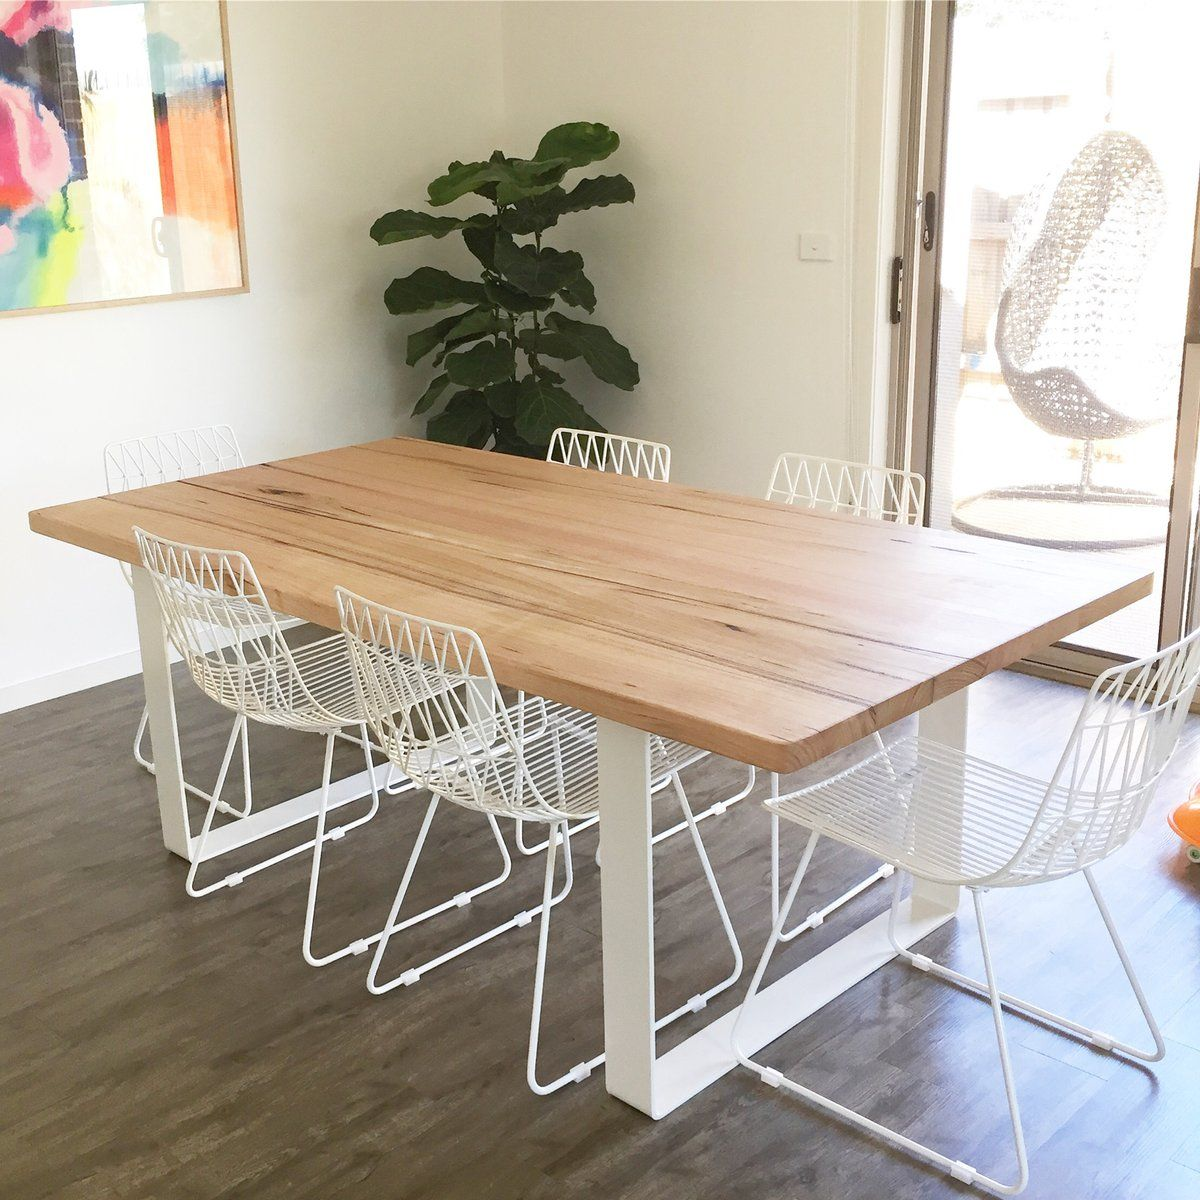 Hairpin Legs Melbourne All Tables Are Made In Melbourne And Materials Sourced In